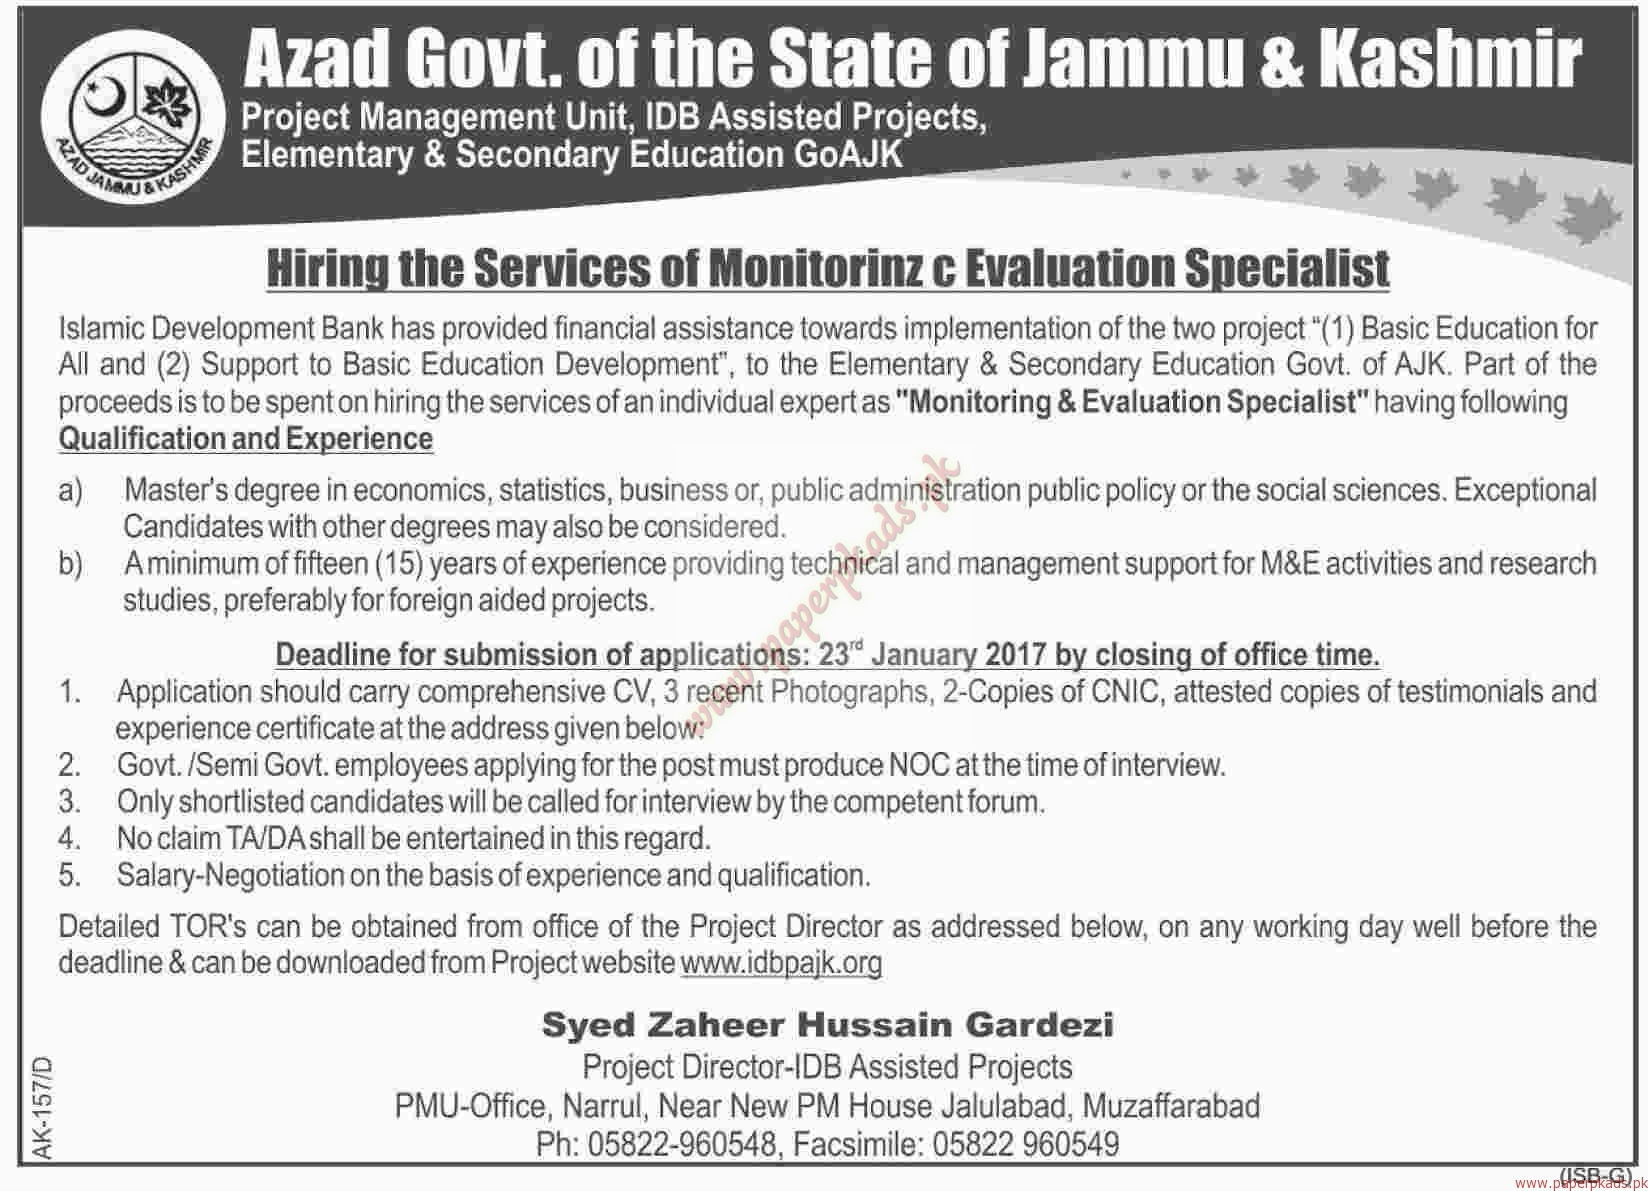 Azad Govt of the State of Jammu & Kashmir Jobs - Dawn Jobs ads 04 January 2017